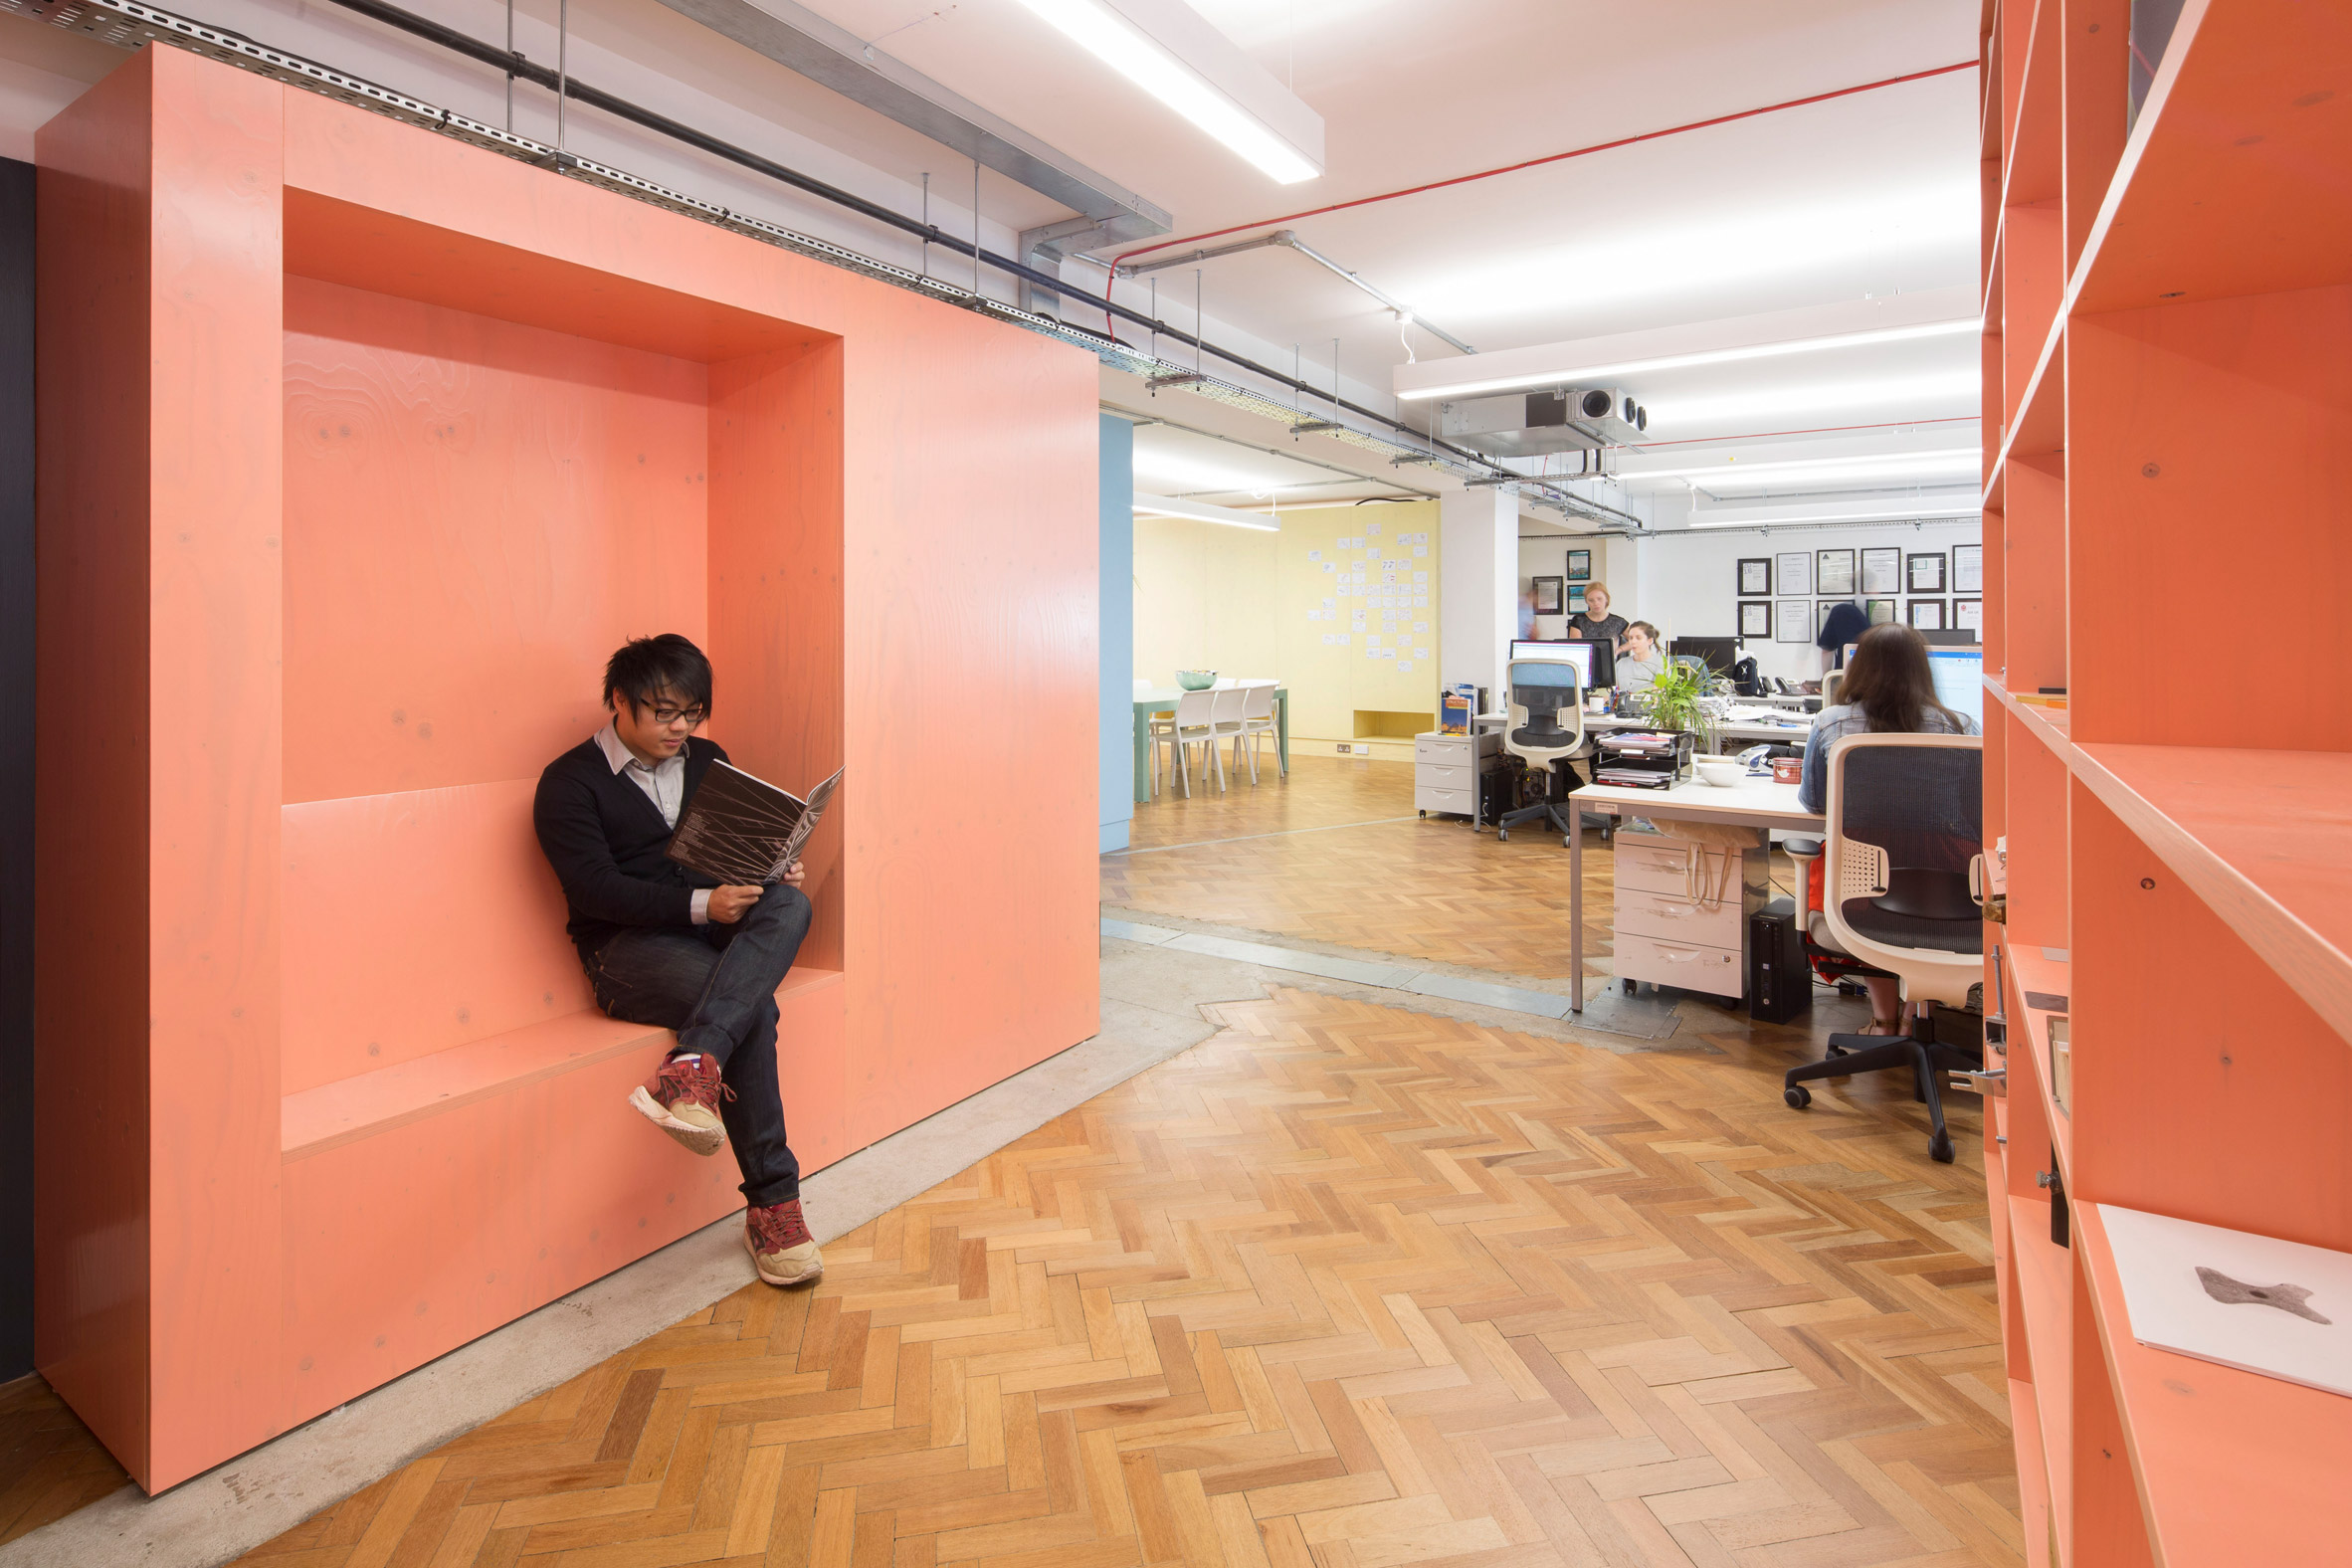 Interrobang fills its office with custom plywood furniture painted the colours of insulating foam